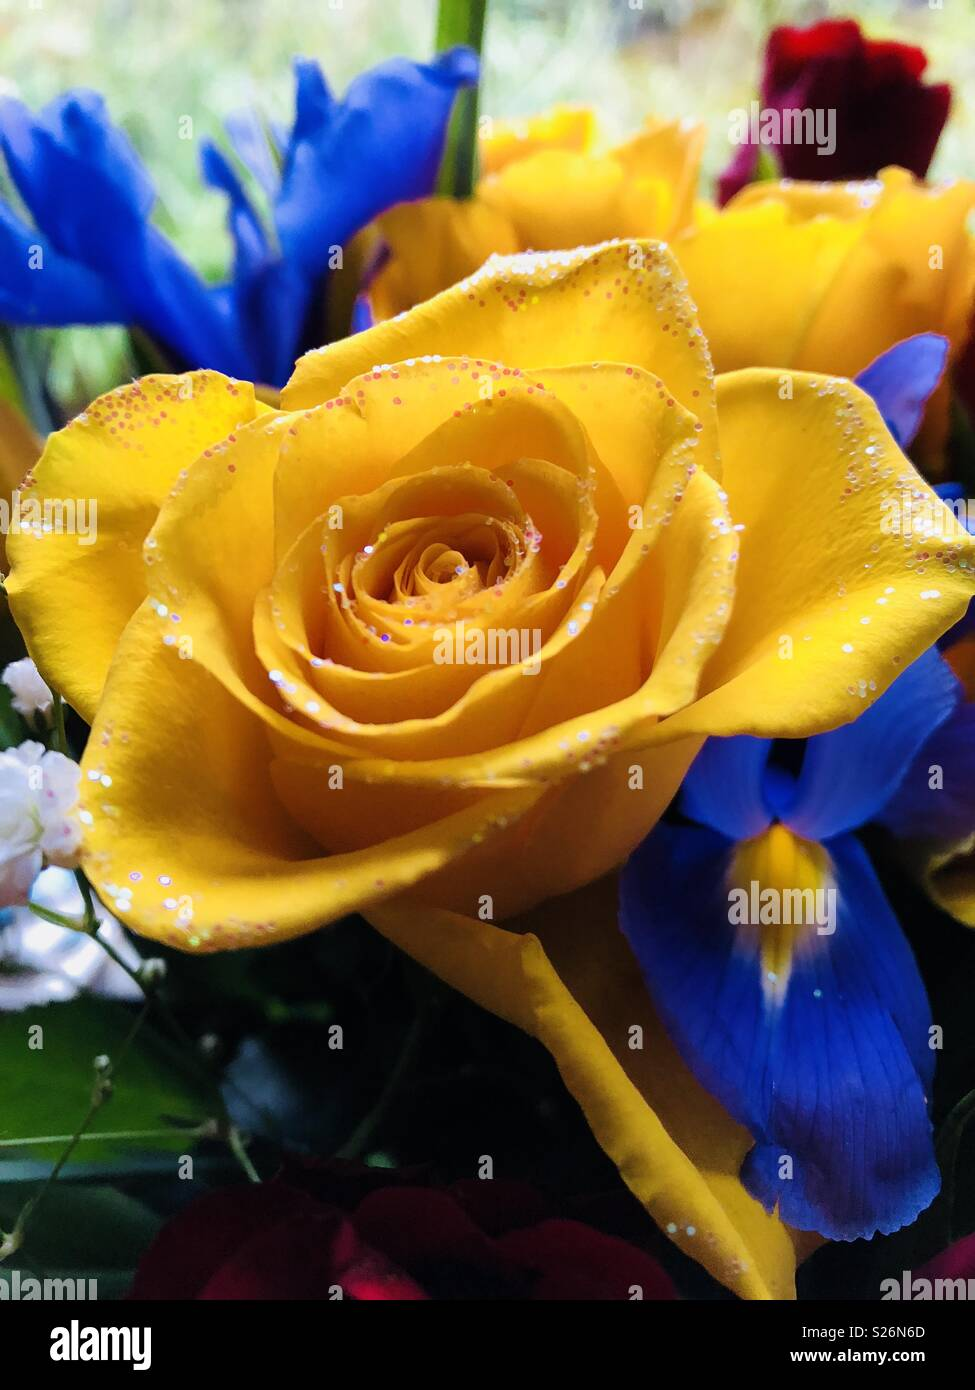 Yellow Roses In A Bouquet With Blue Purple And Red Flowers Stock Photo Alamy